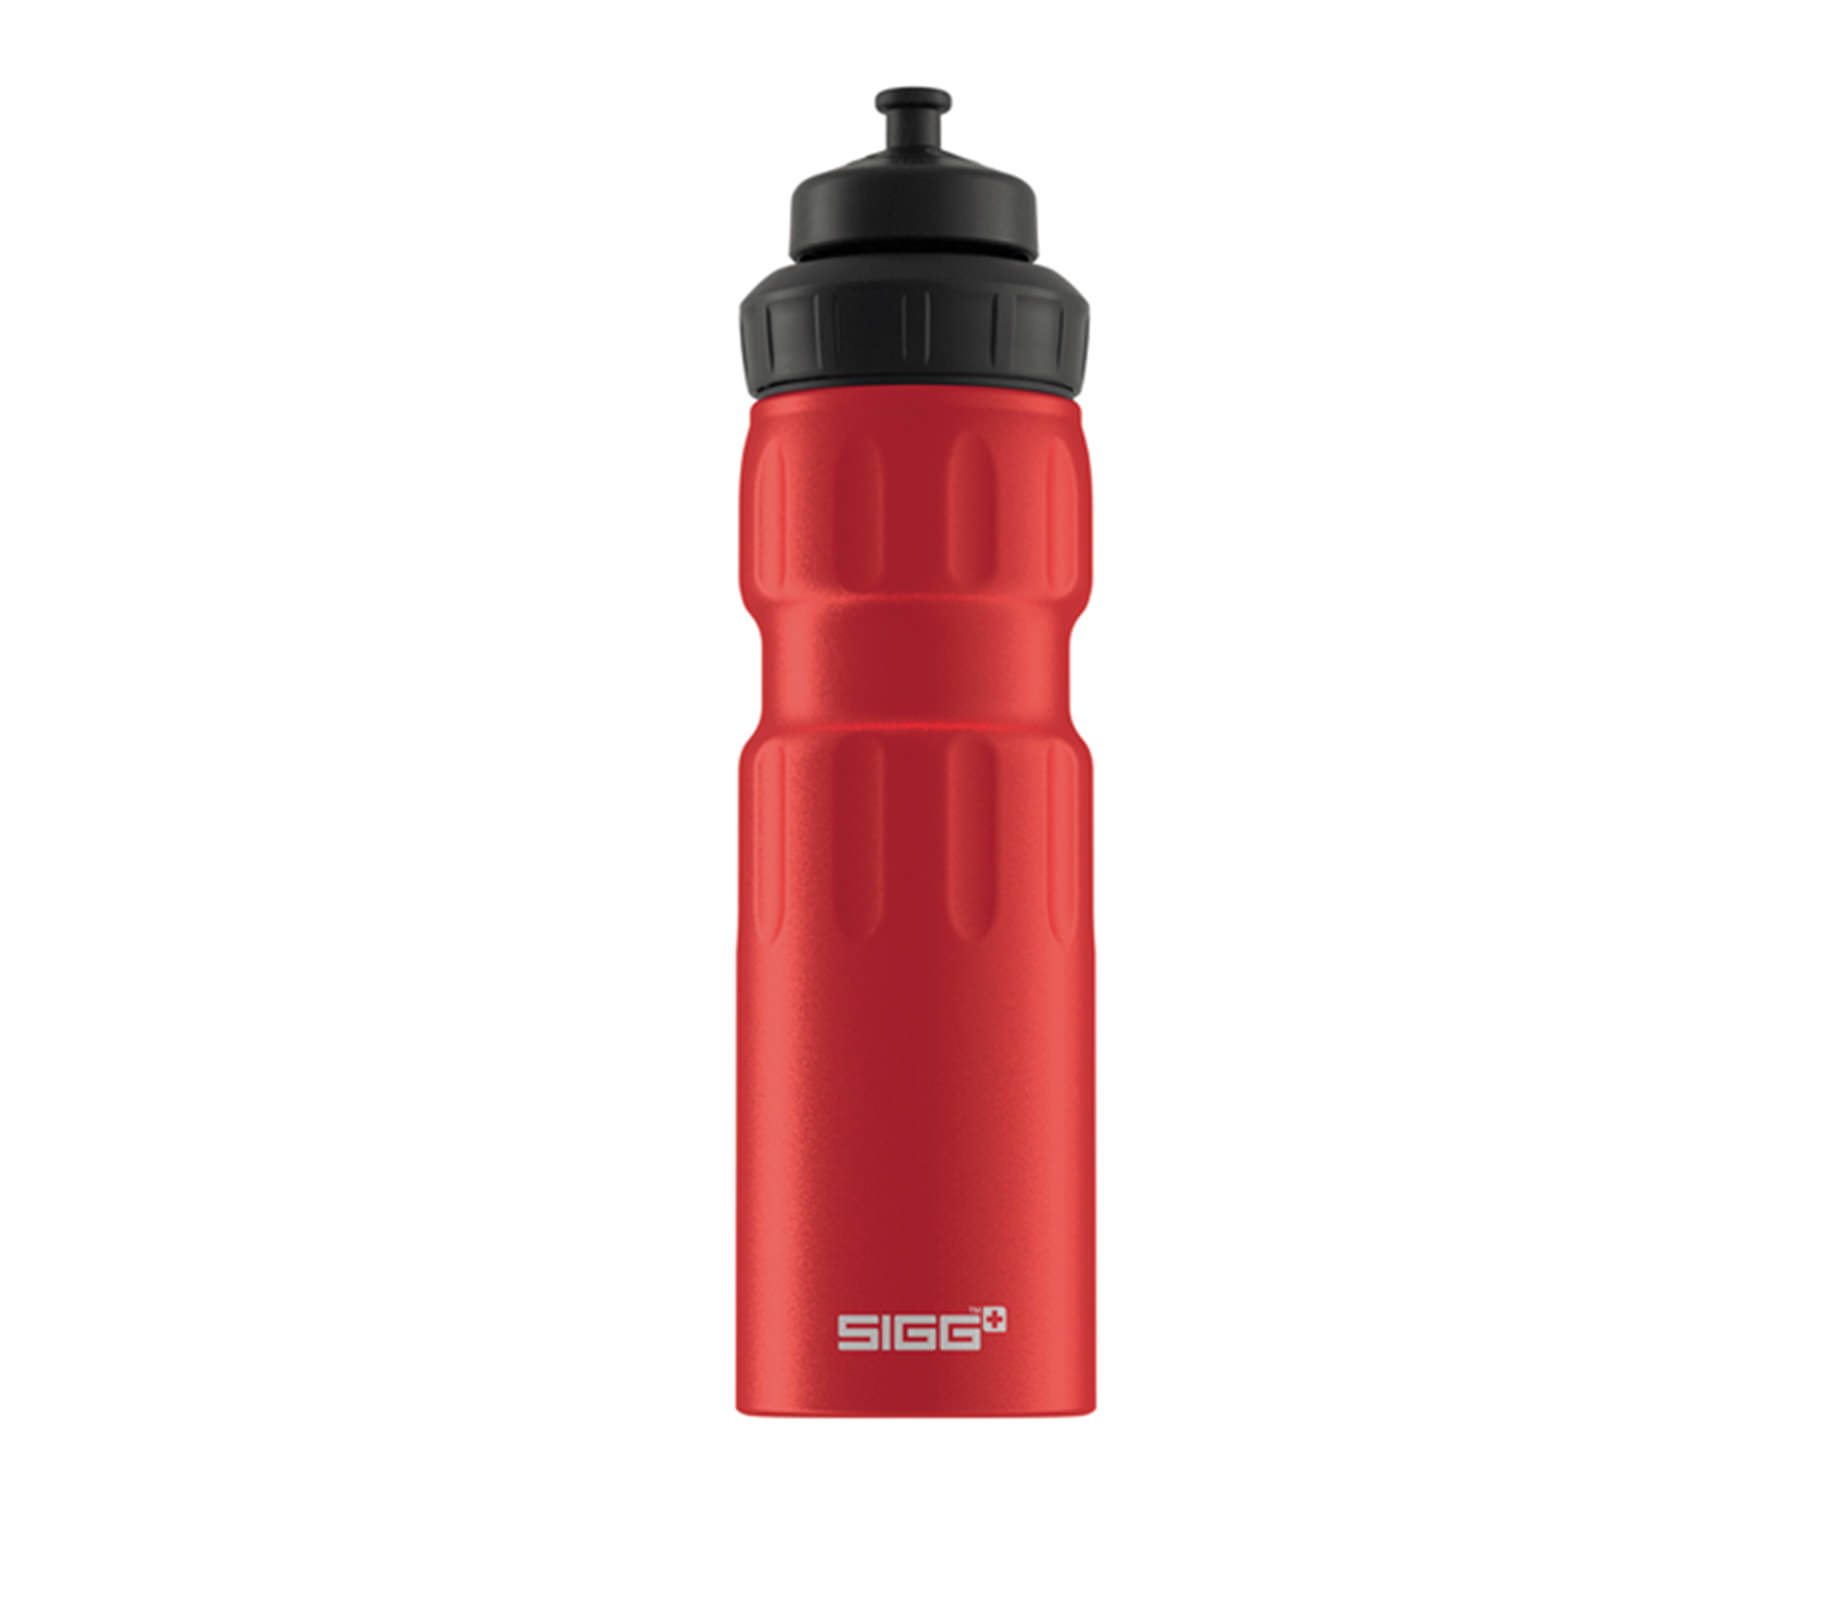 binh-nuoc-sigg-active-wmb-sports-red-touch-750ml-WETREK.VN